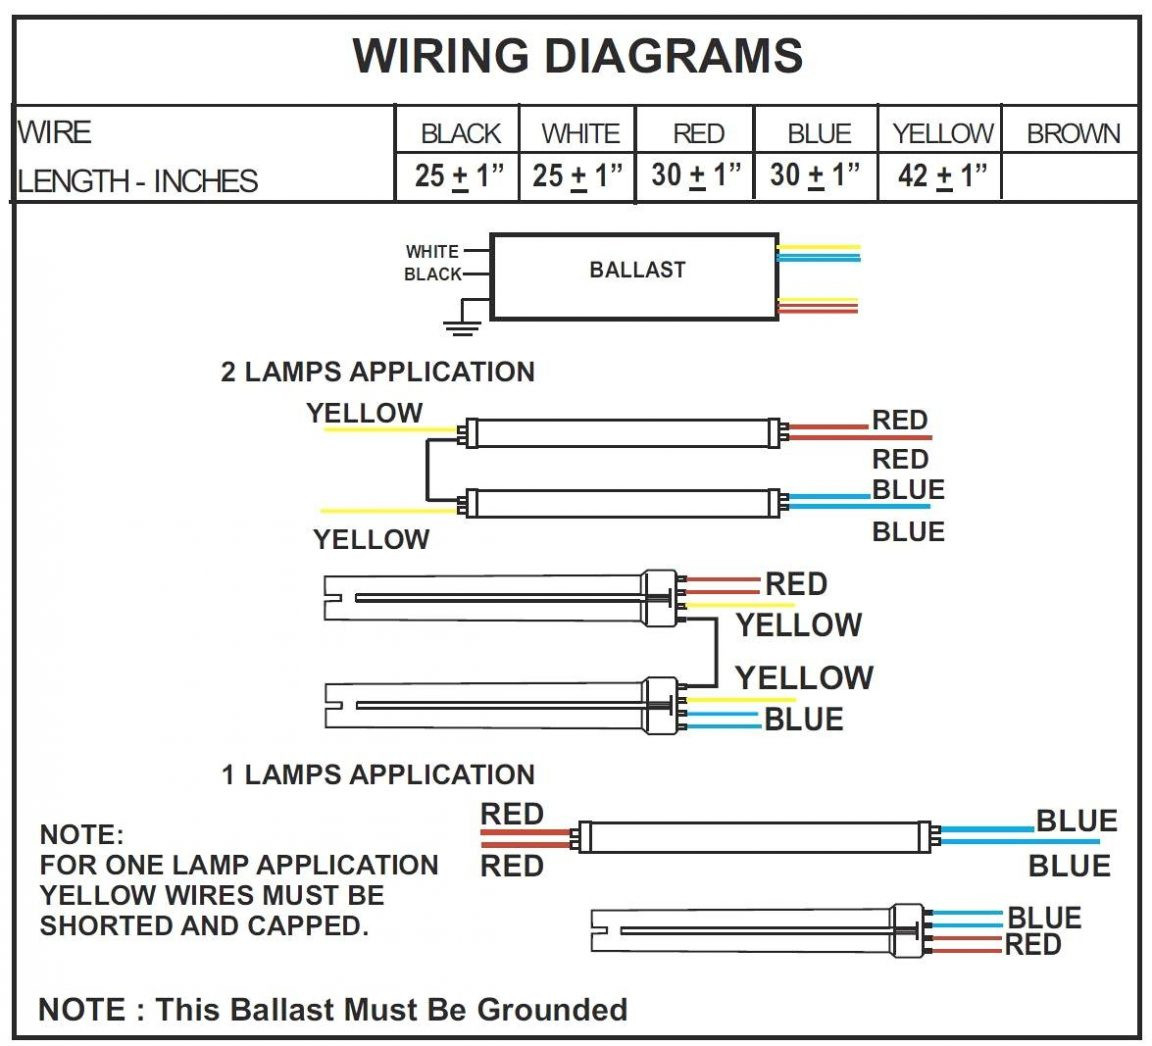 hight resolution of f96t12 ballast wiring diagram 4 lamp 2 ballast wiring diagram fresh f96t12 electronic incredible rh